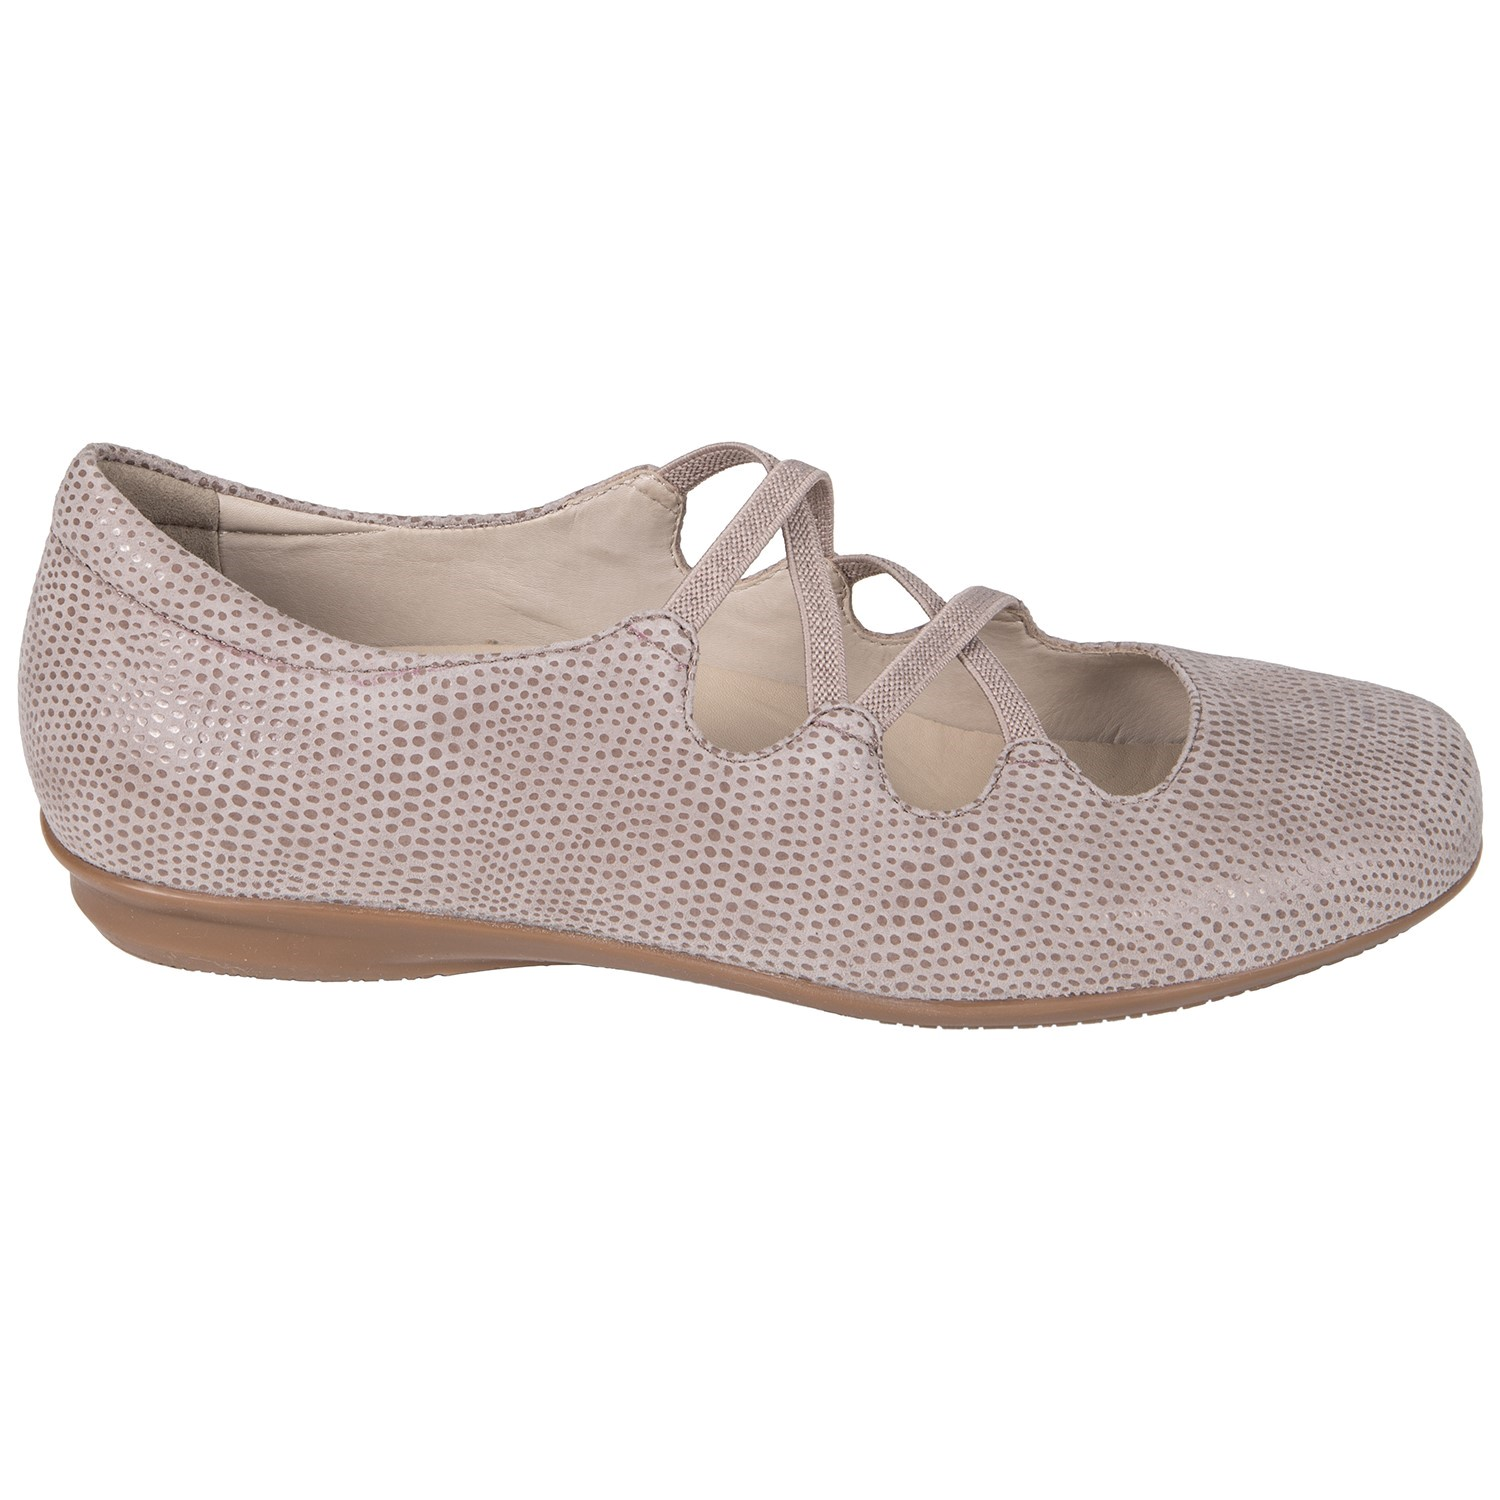 ef76ae3b1a8 Earthies Clare - Women s Ballet Flat - Ginger - outside